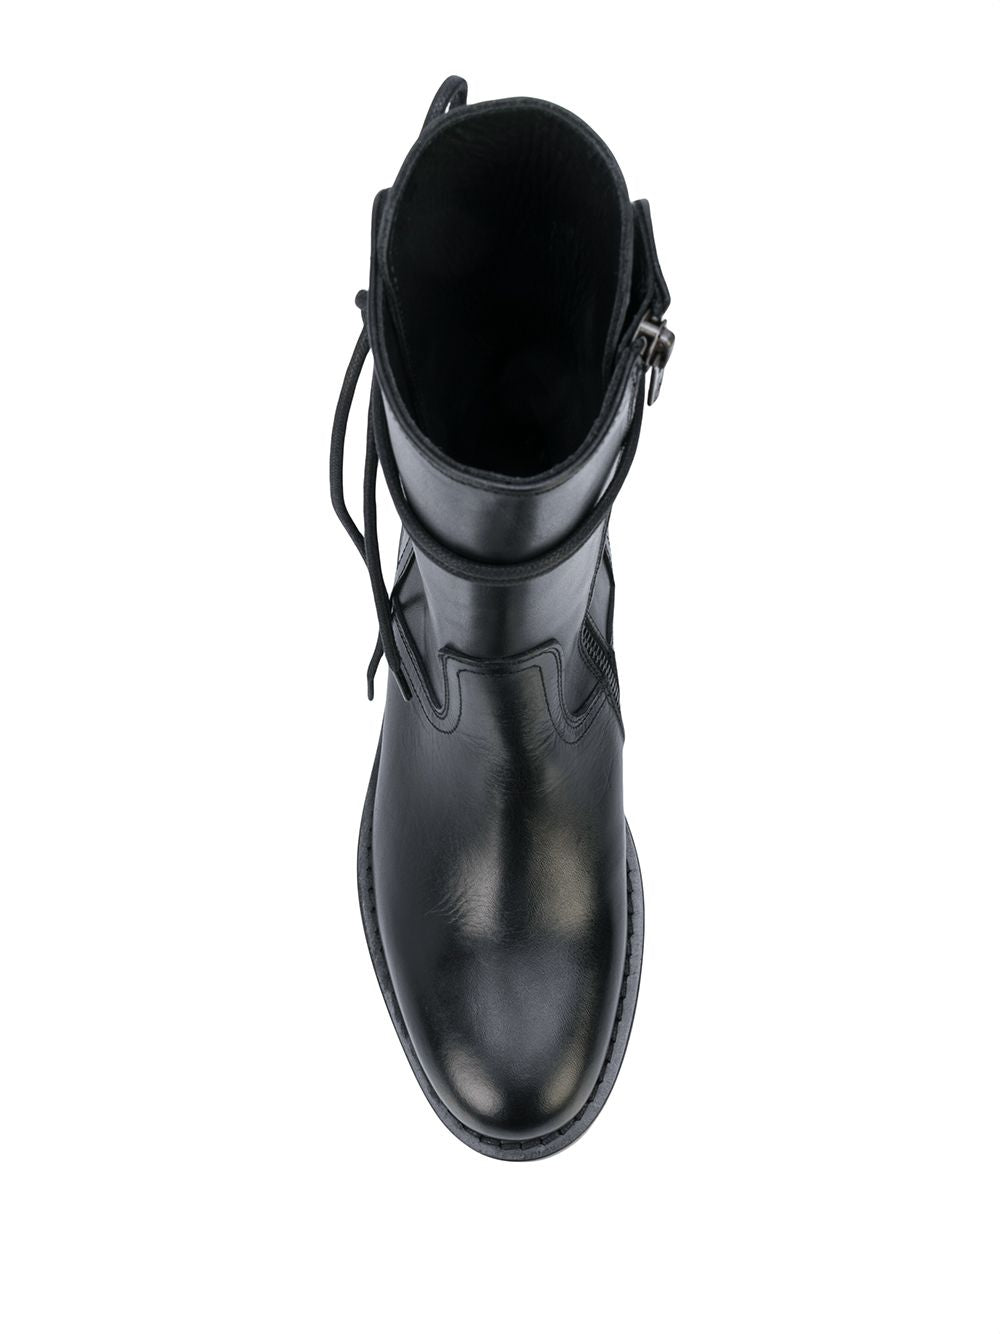 ANN DEMEULEMEESTER WOMEN CLASSIC BACK LACE UP BOOTS